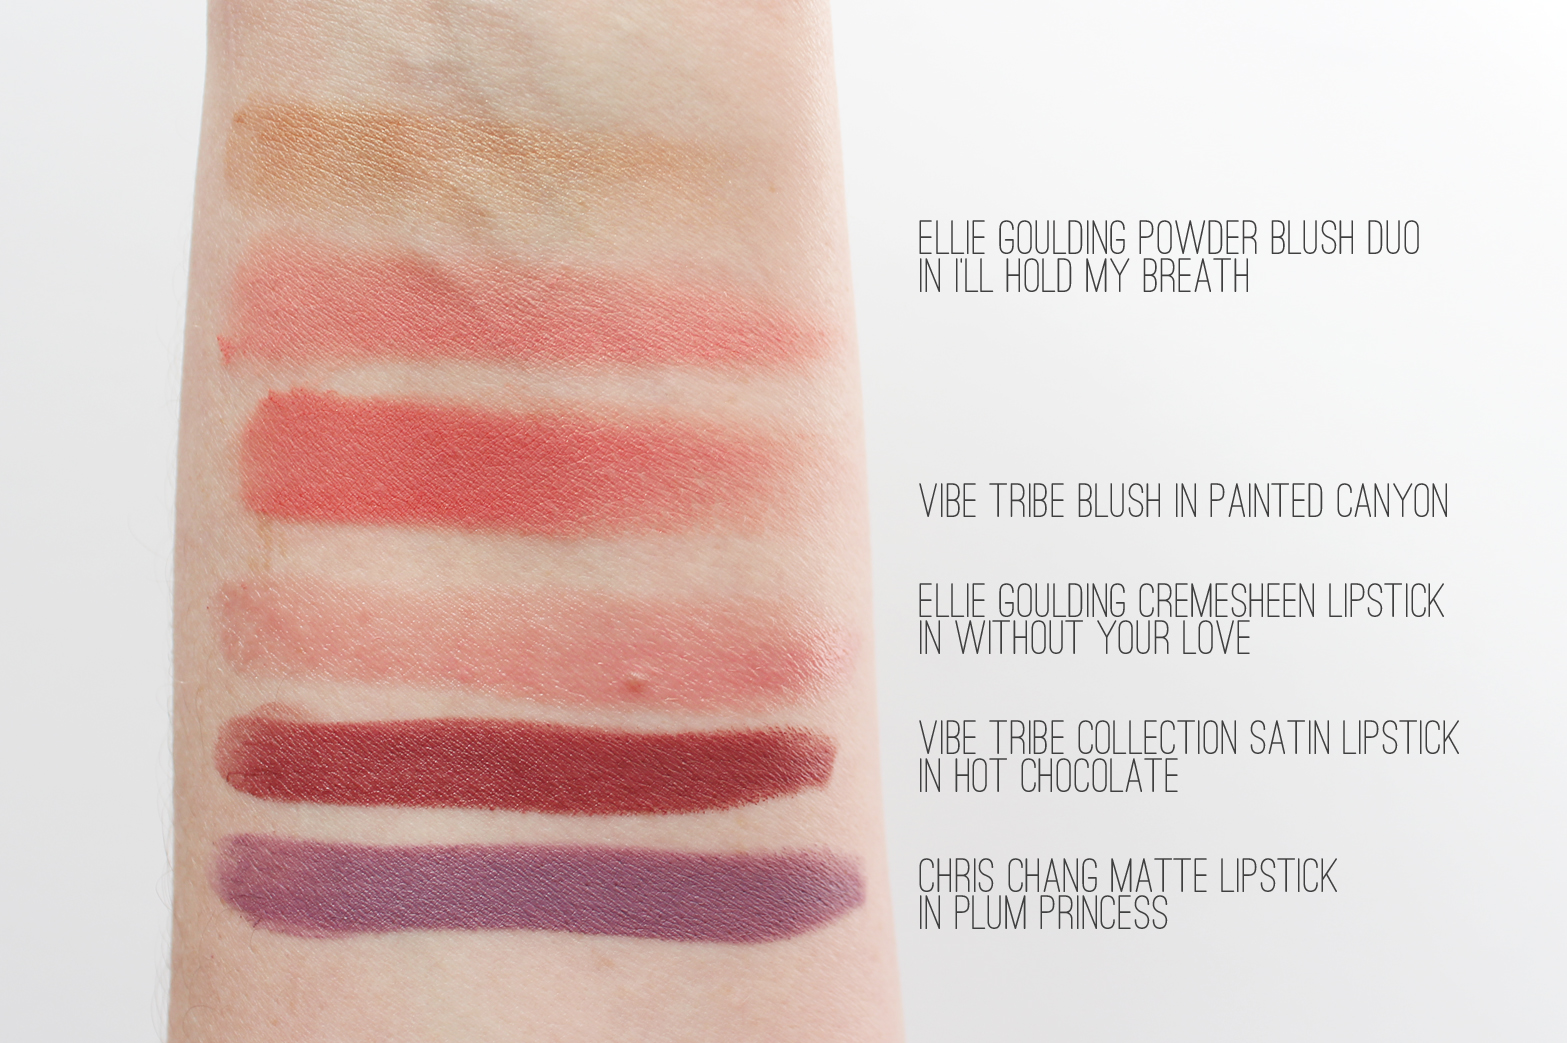 M.A.C. | Haul - Vibe Tribe, Ellie Goulding + Chris Chang Collection - Swatches - CassandraMyee